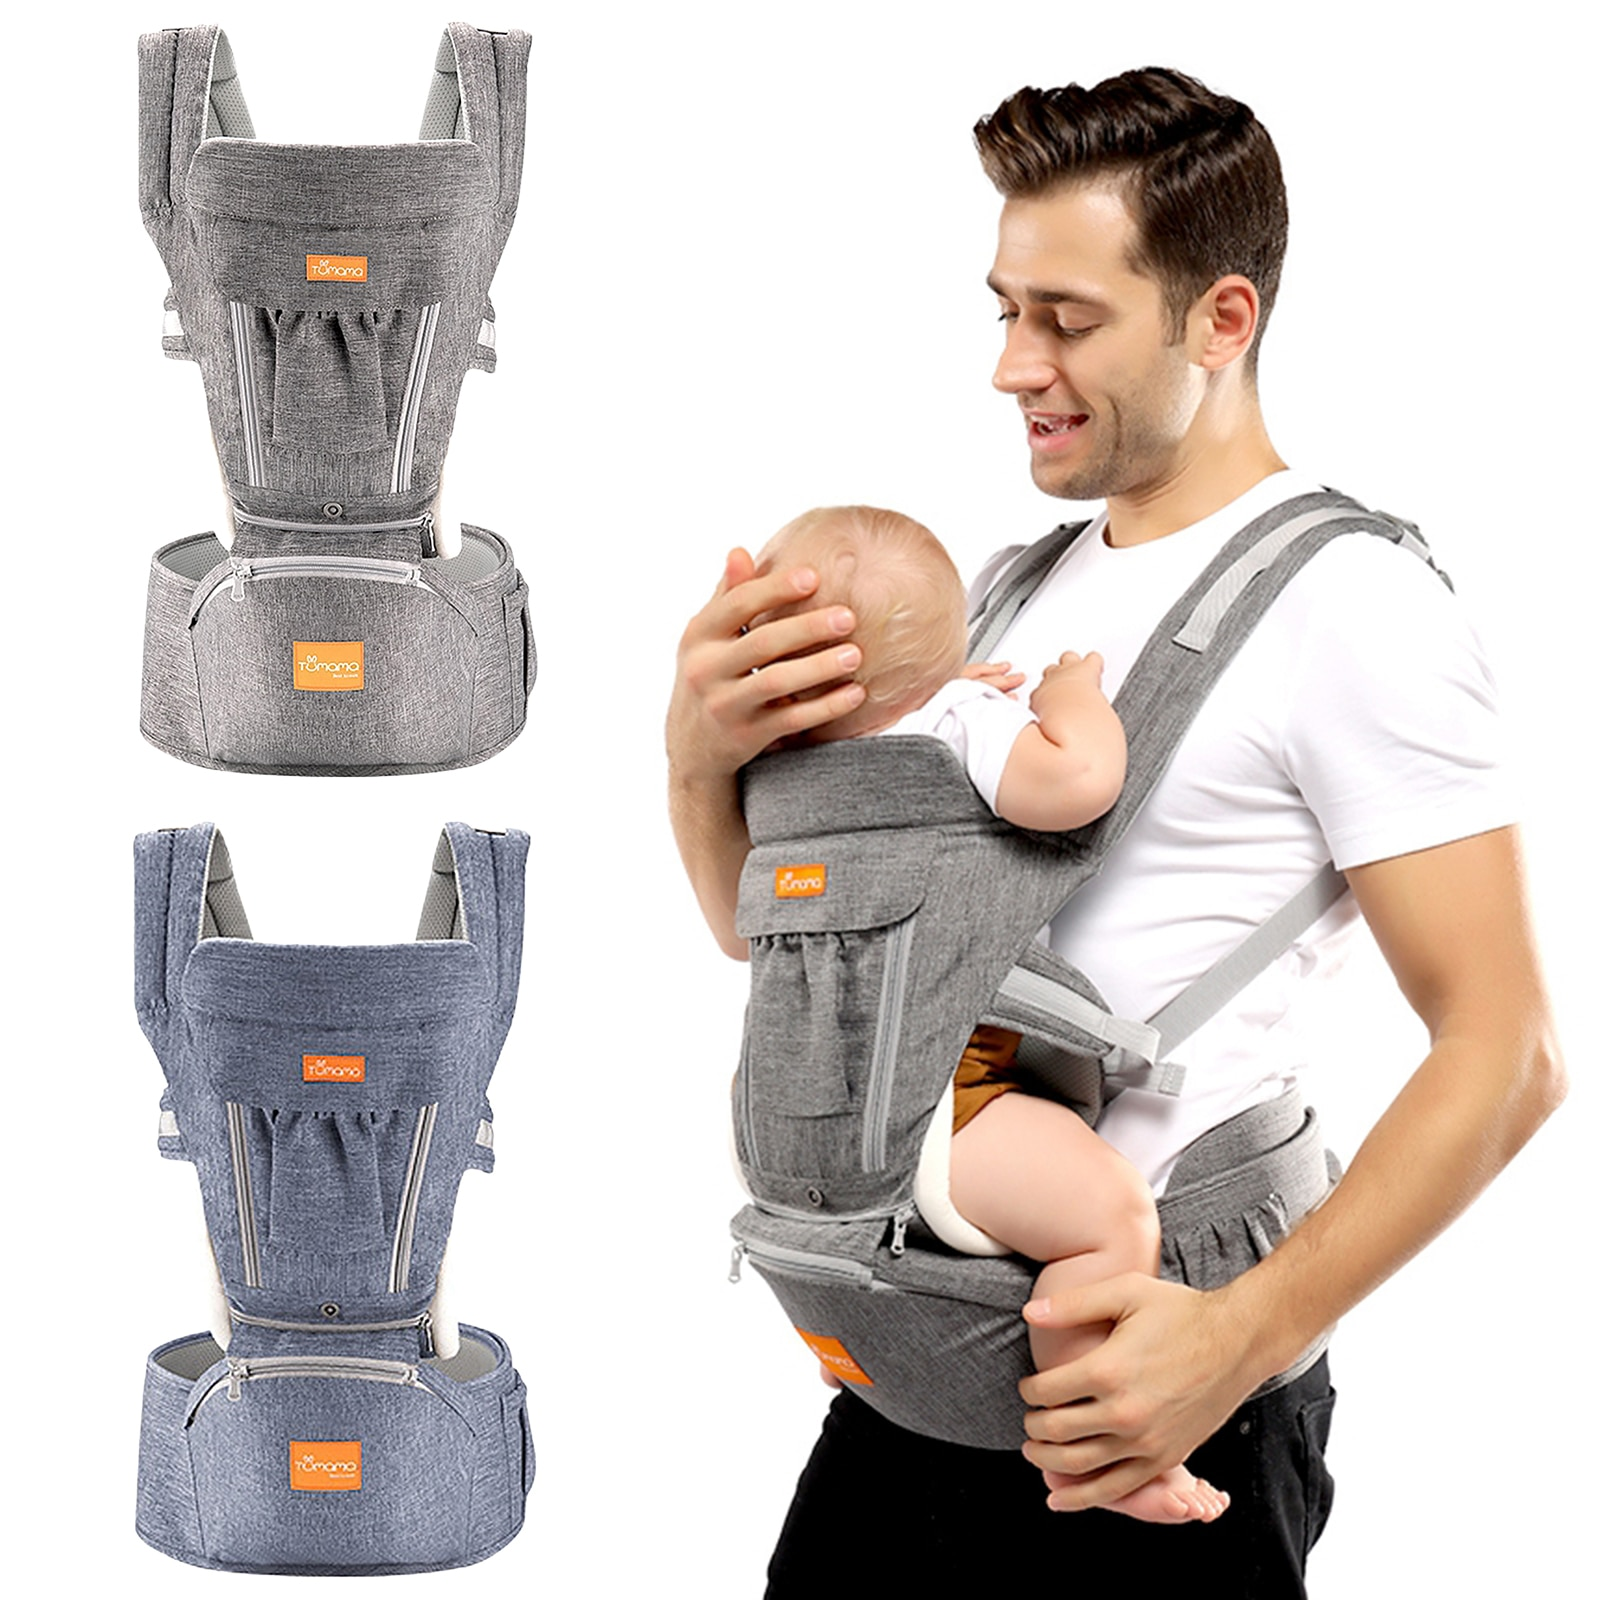 Baby Carrier for Baby Travel Weight-bearing 3.6-15kg 0-36 Months Babies